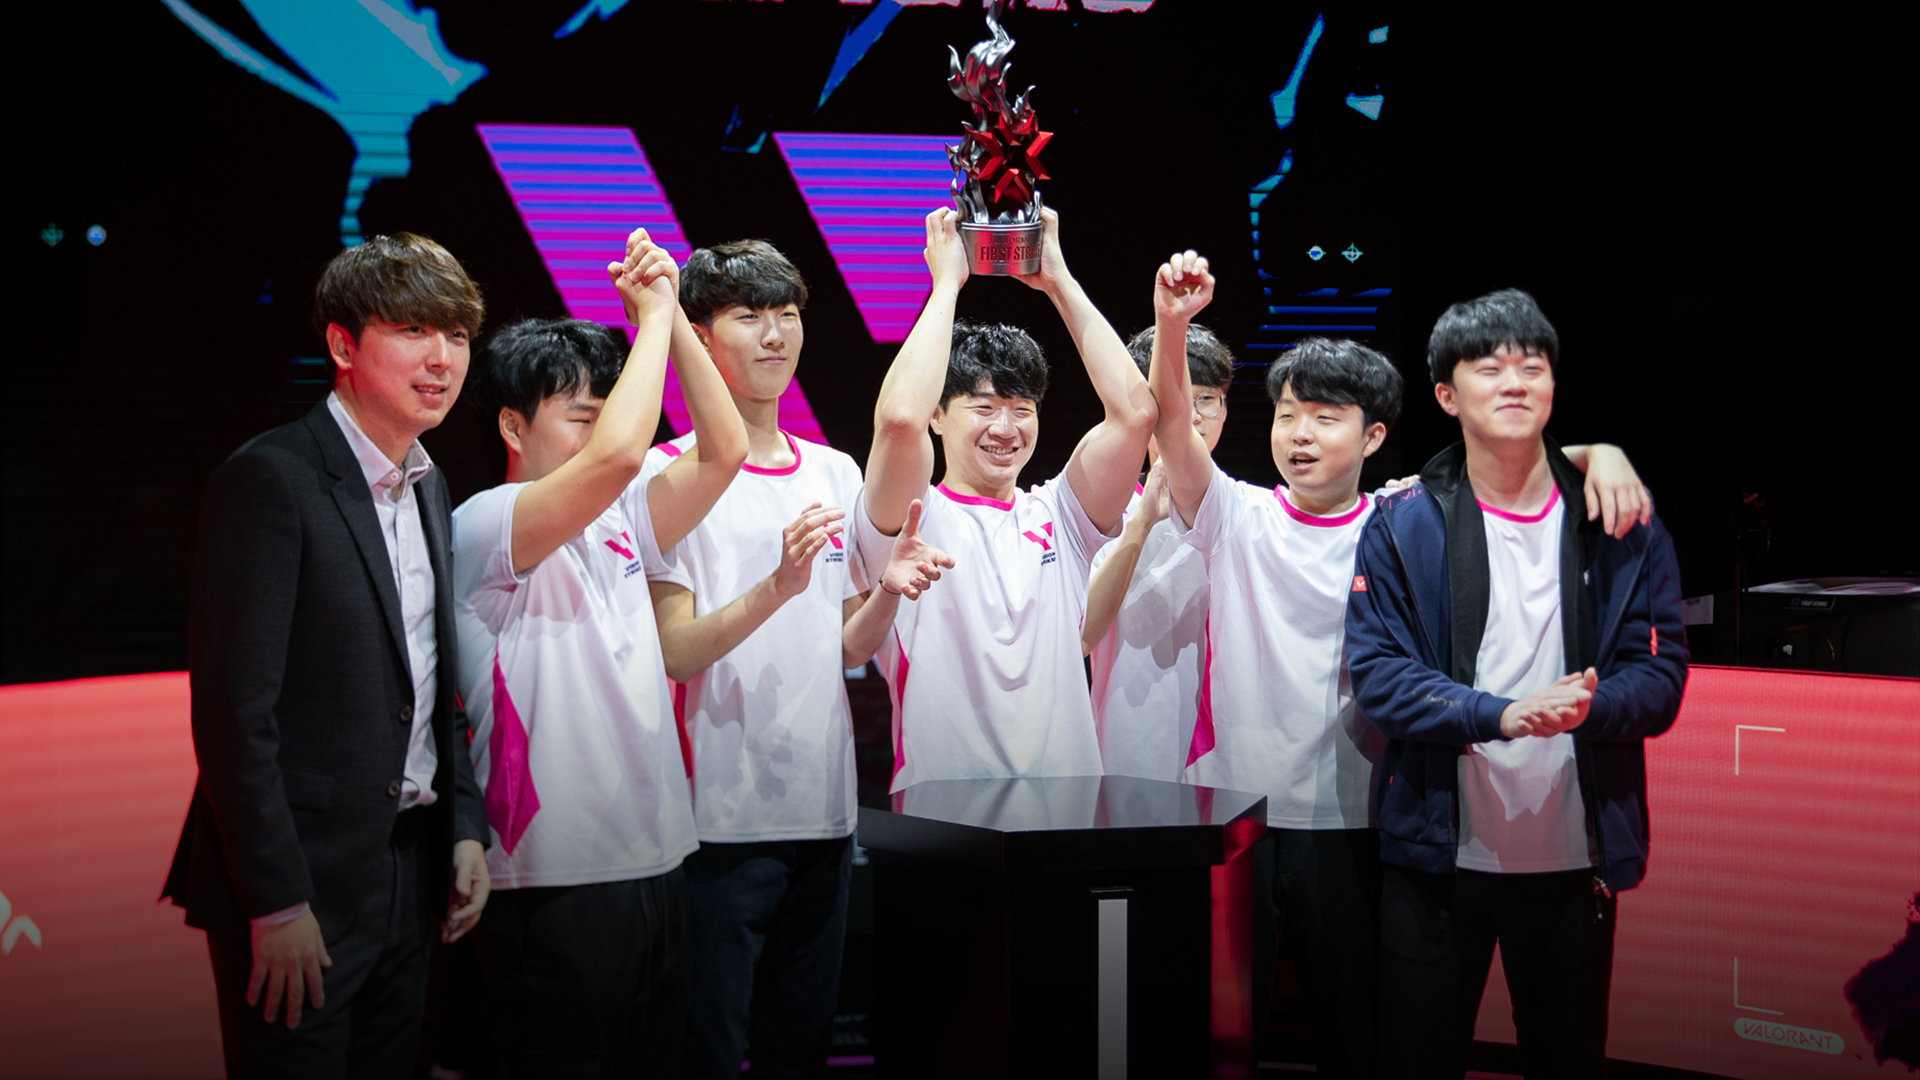 glow retires from professional play and leaves the Korean Valorant giants Vision Strikers